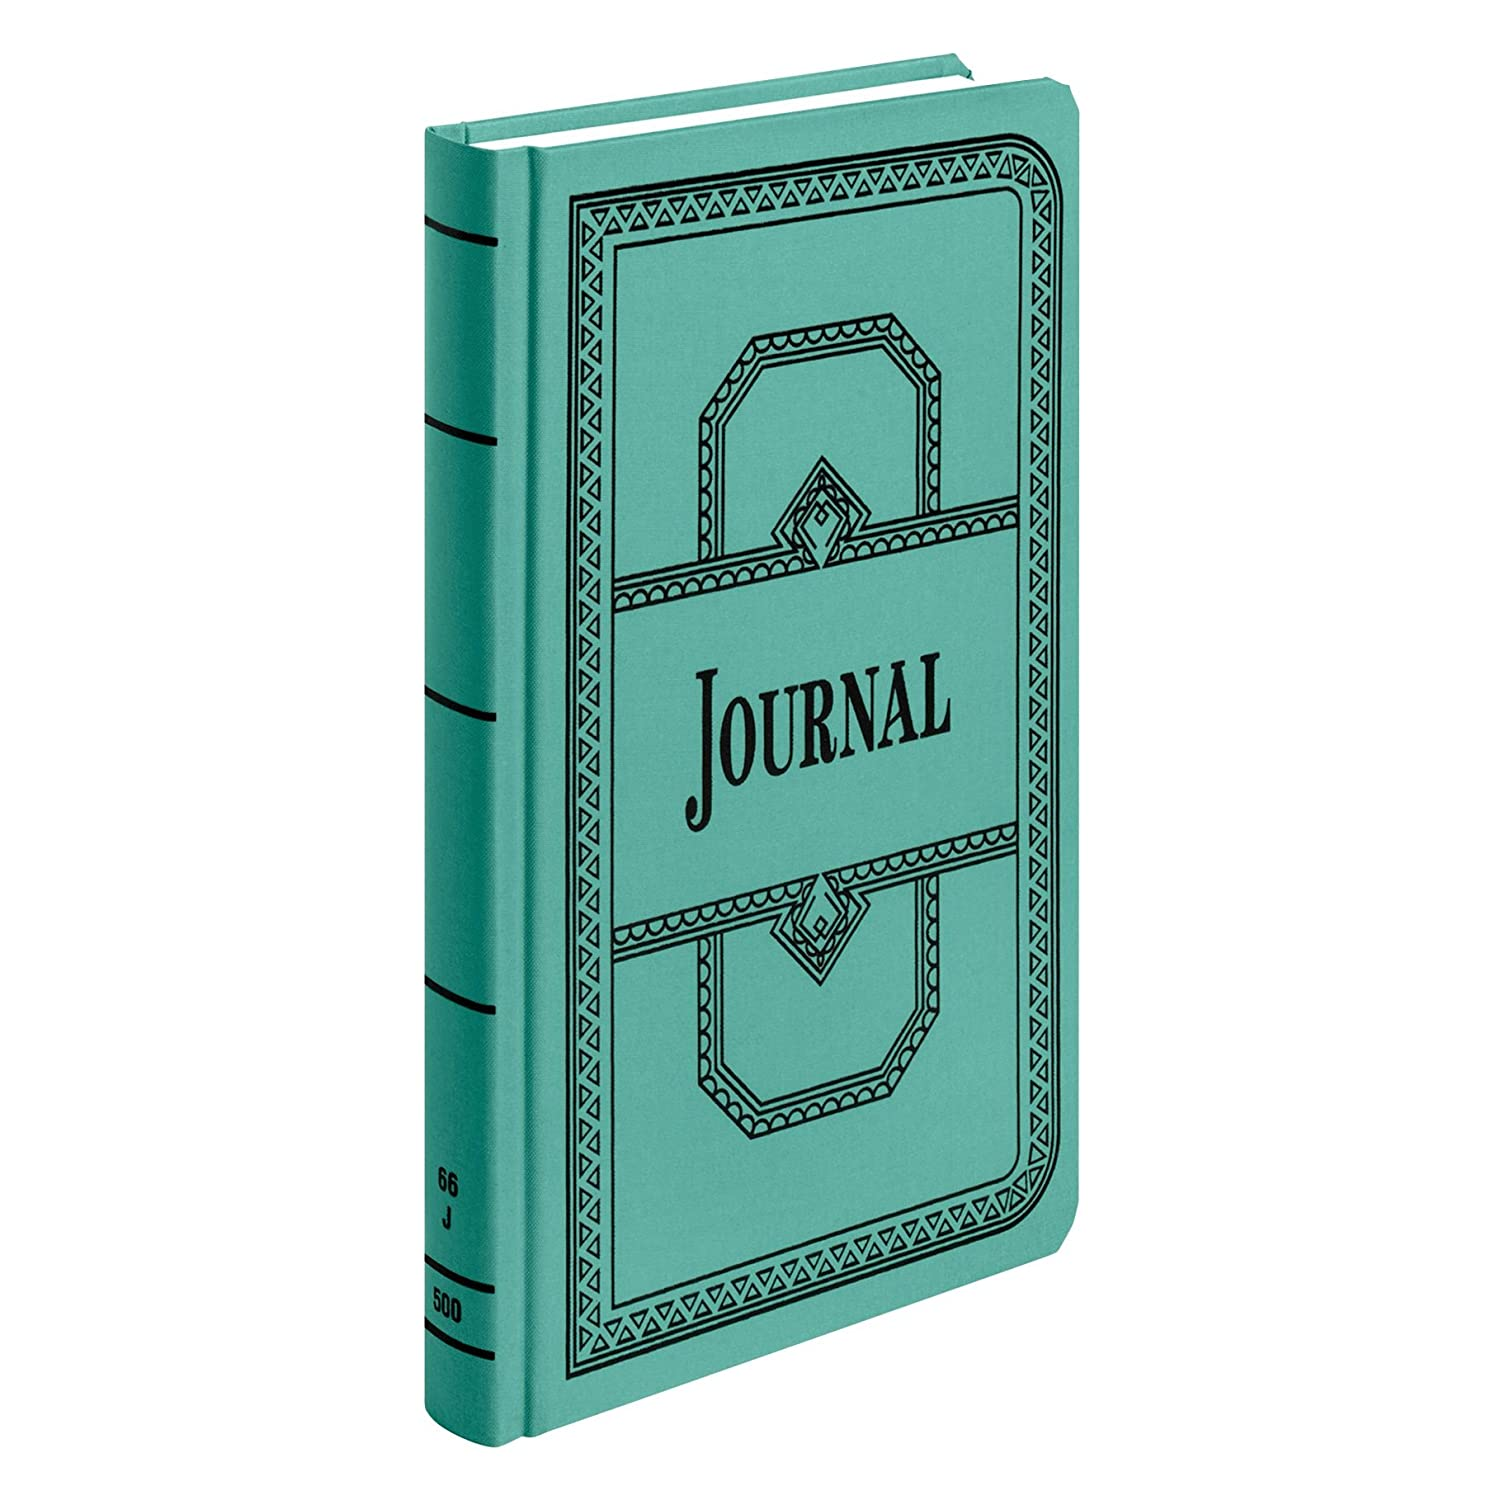 "Boorum & Pease 66 Series Account Book, Journal Ruled, Green, 500 Pages, 12-1/8"" x 7-5/8"" (66-500-J) Esselte Corporation"